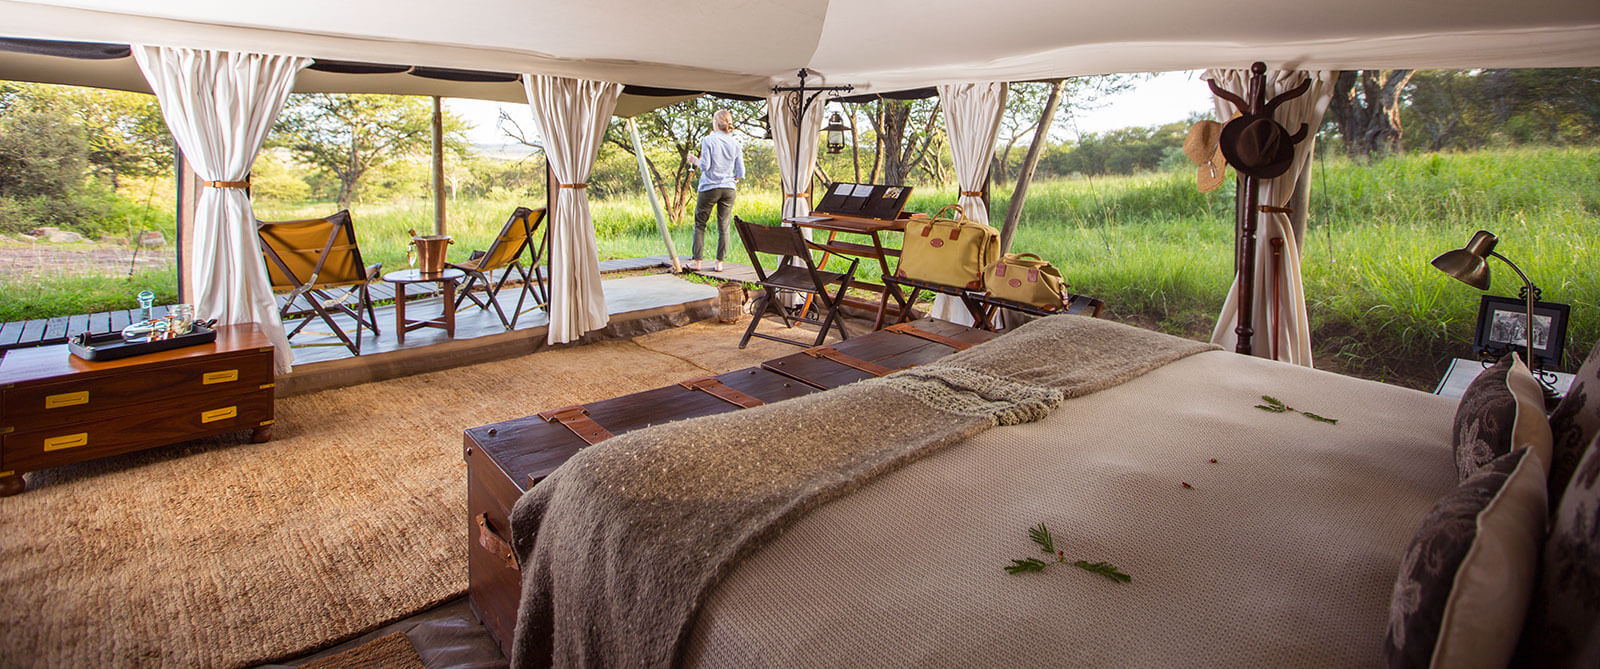 Serengeti Pioneer Camp - Great Migration Tented Camp - Tanzania Safari Honeymoon